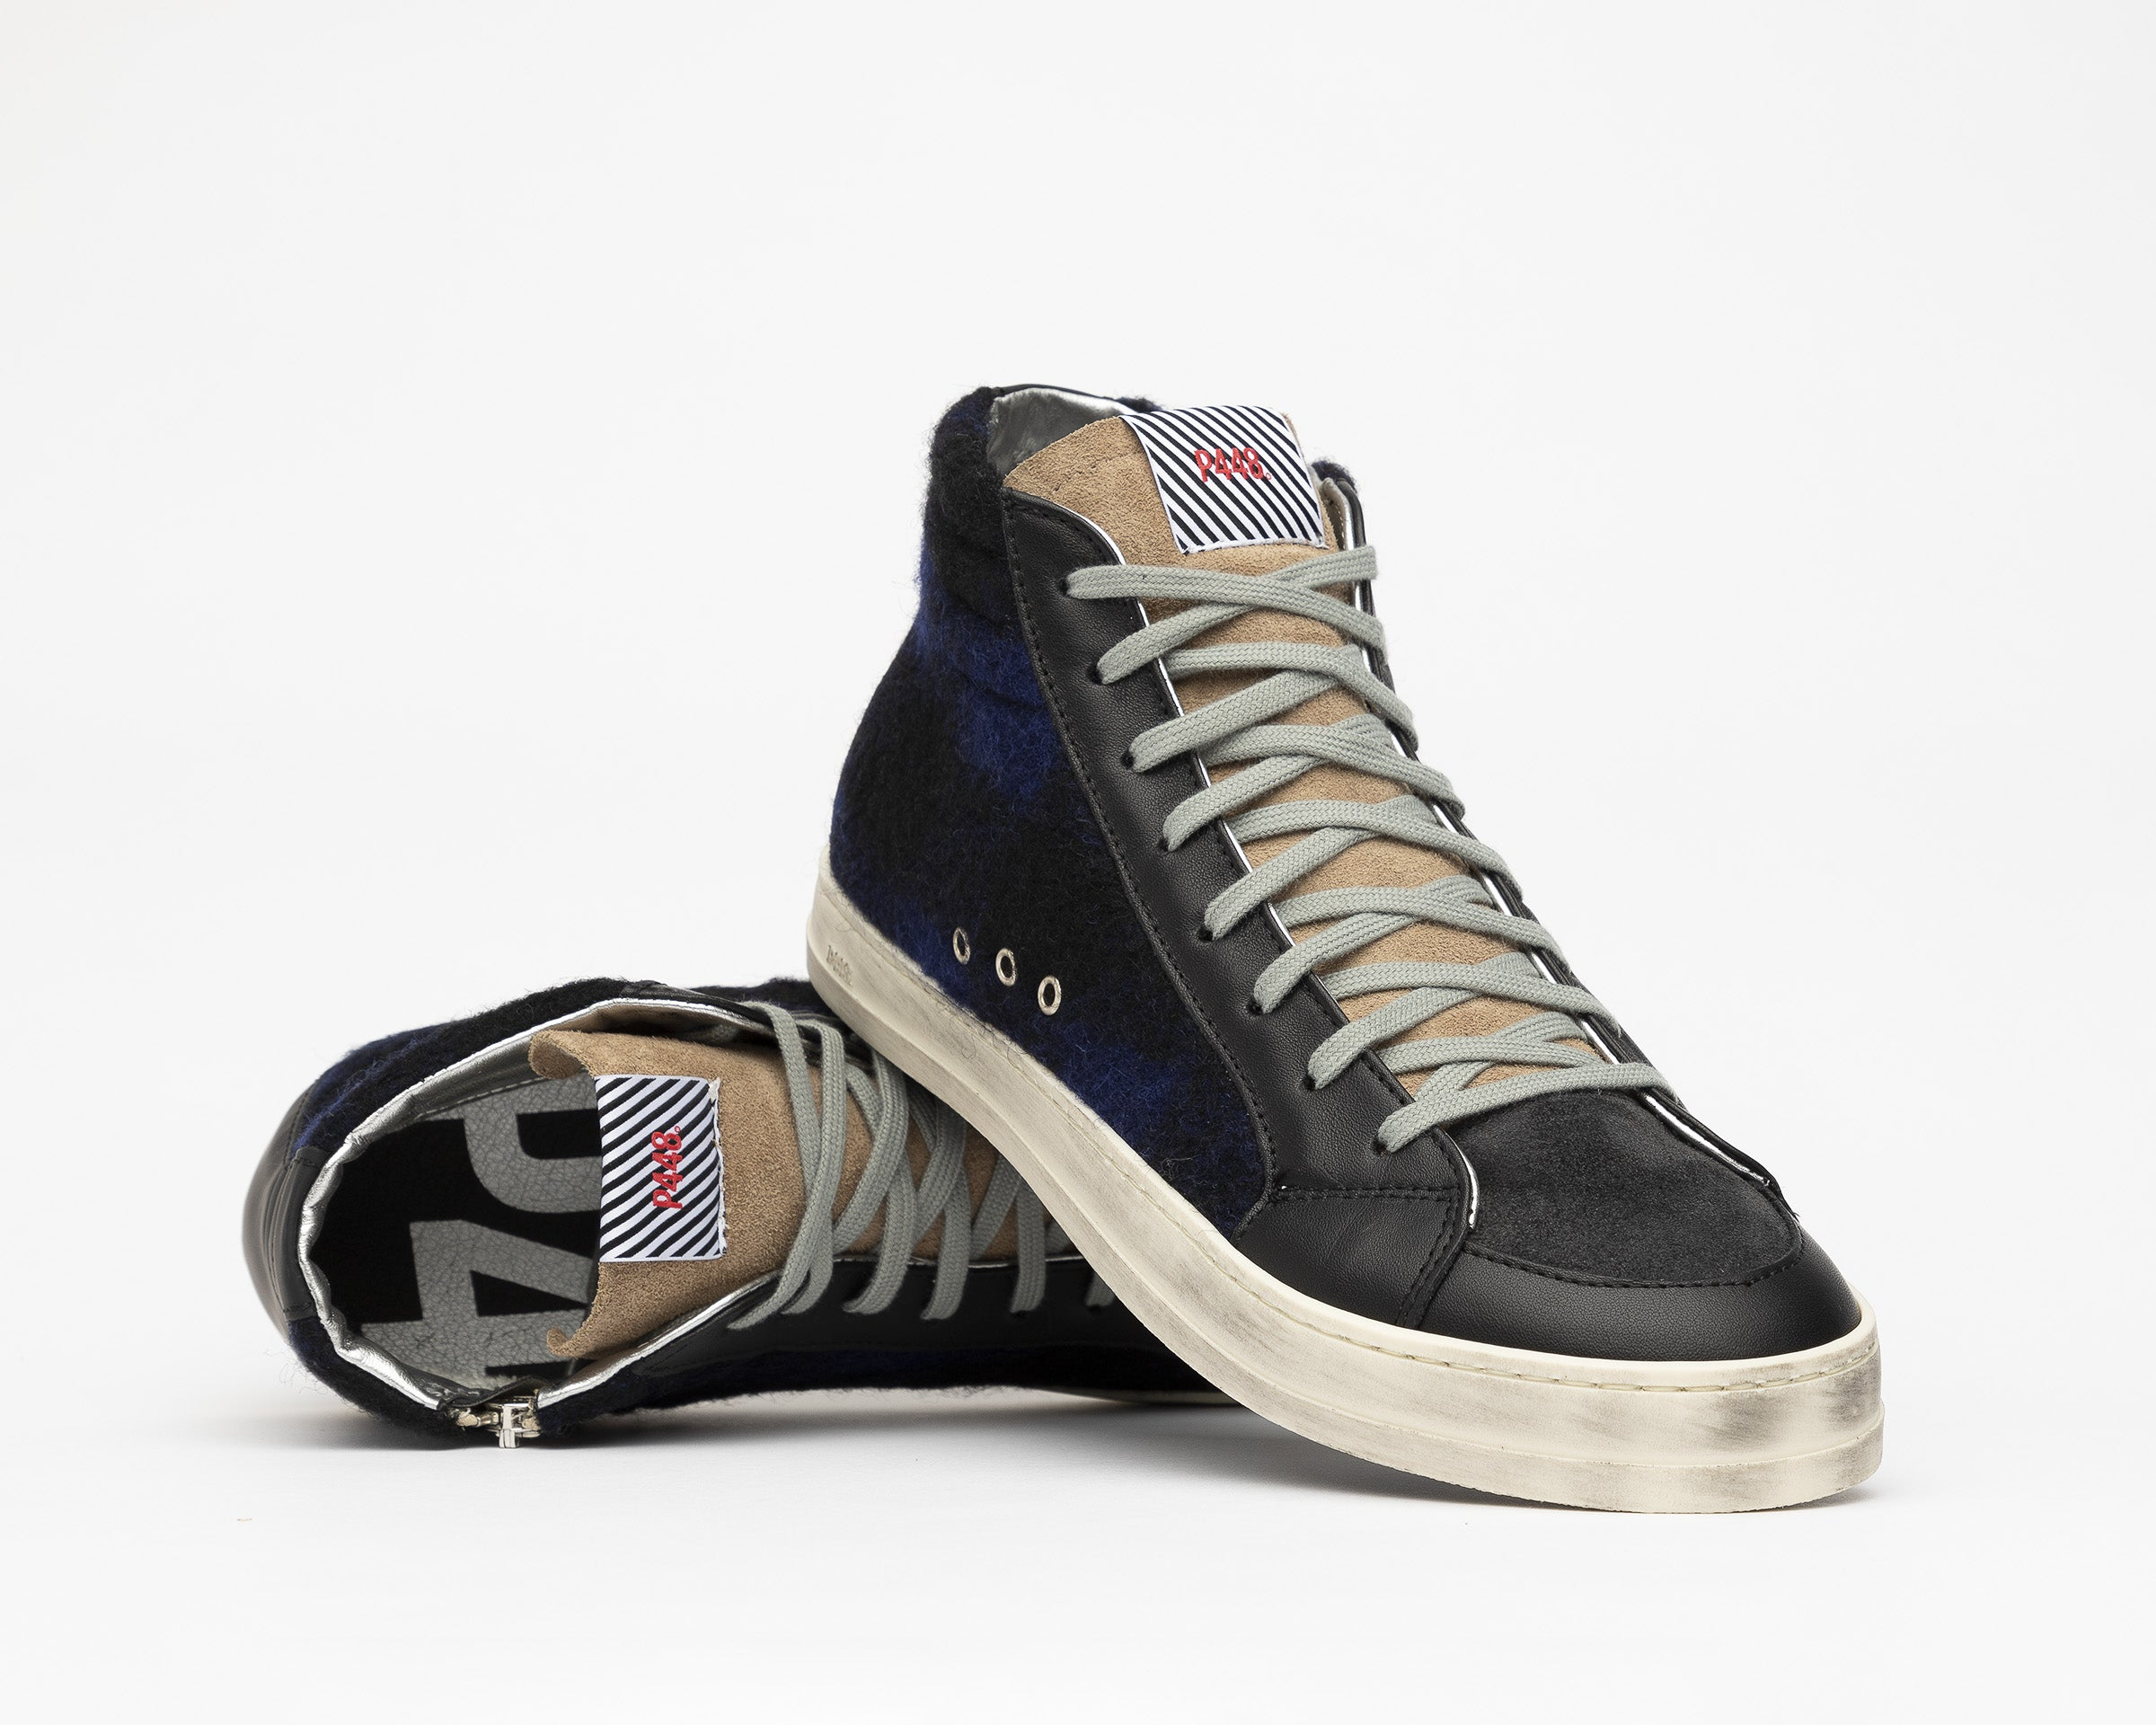 Skate High-Top Sneaker in Tartan/Royal - Detail